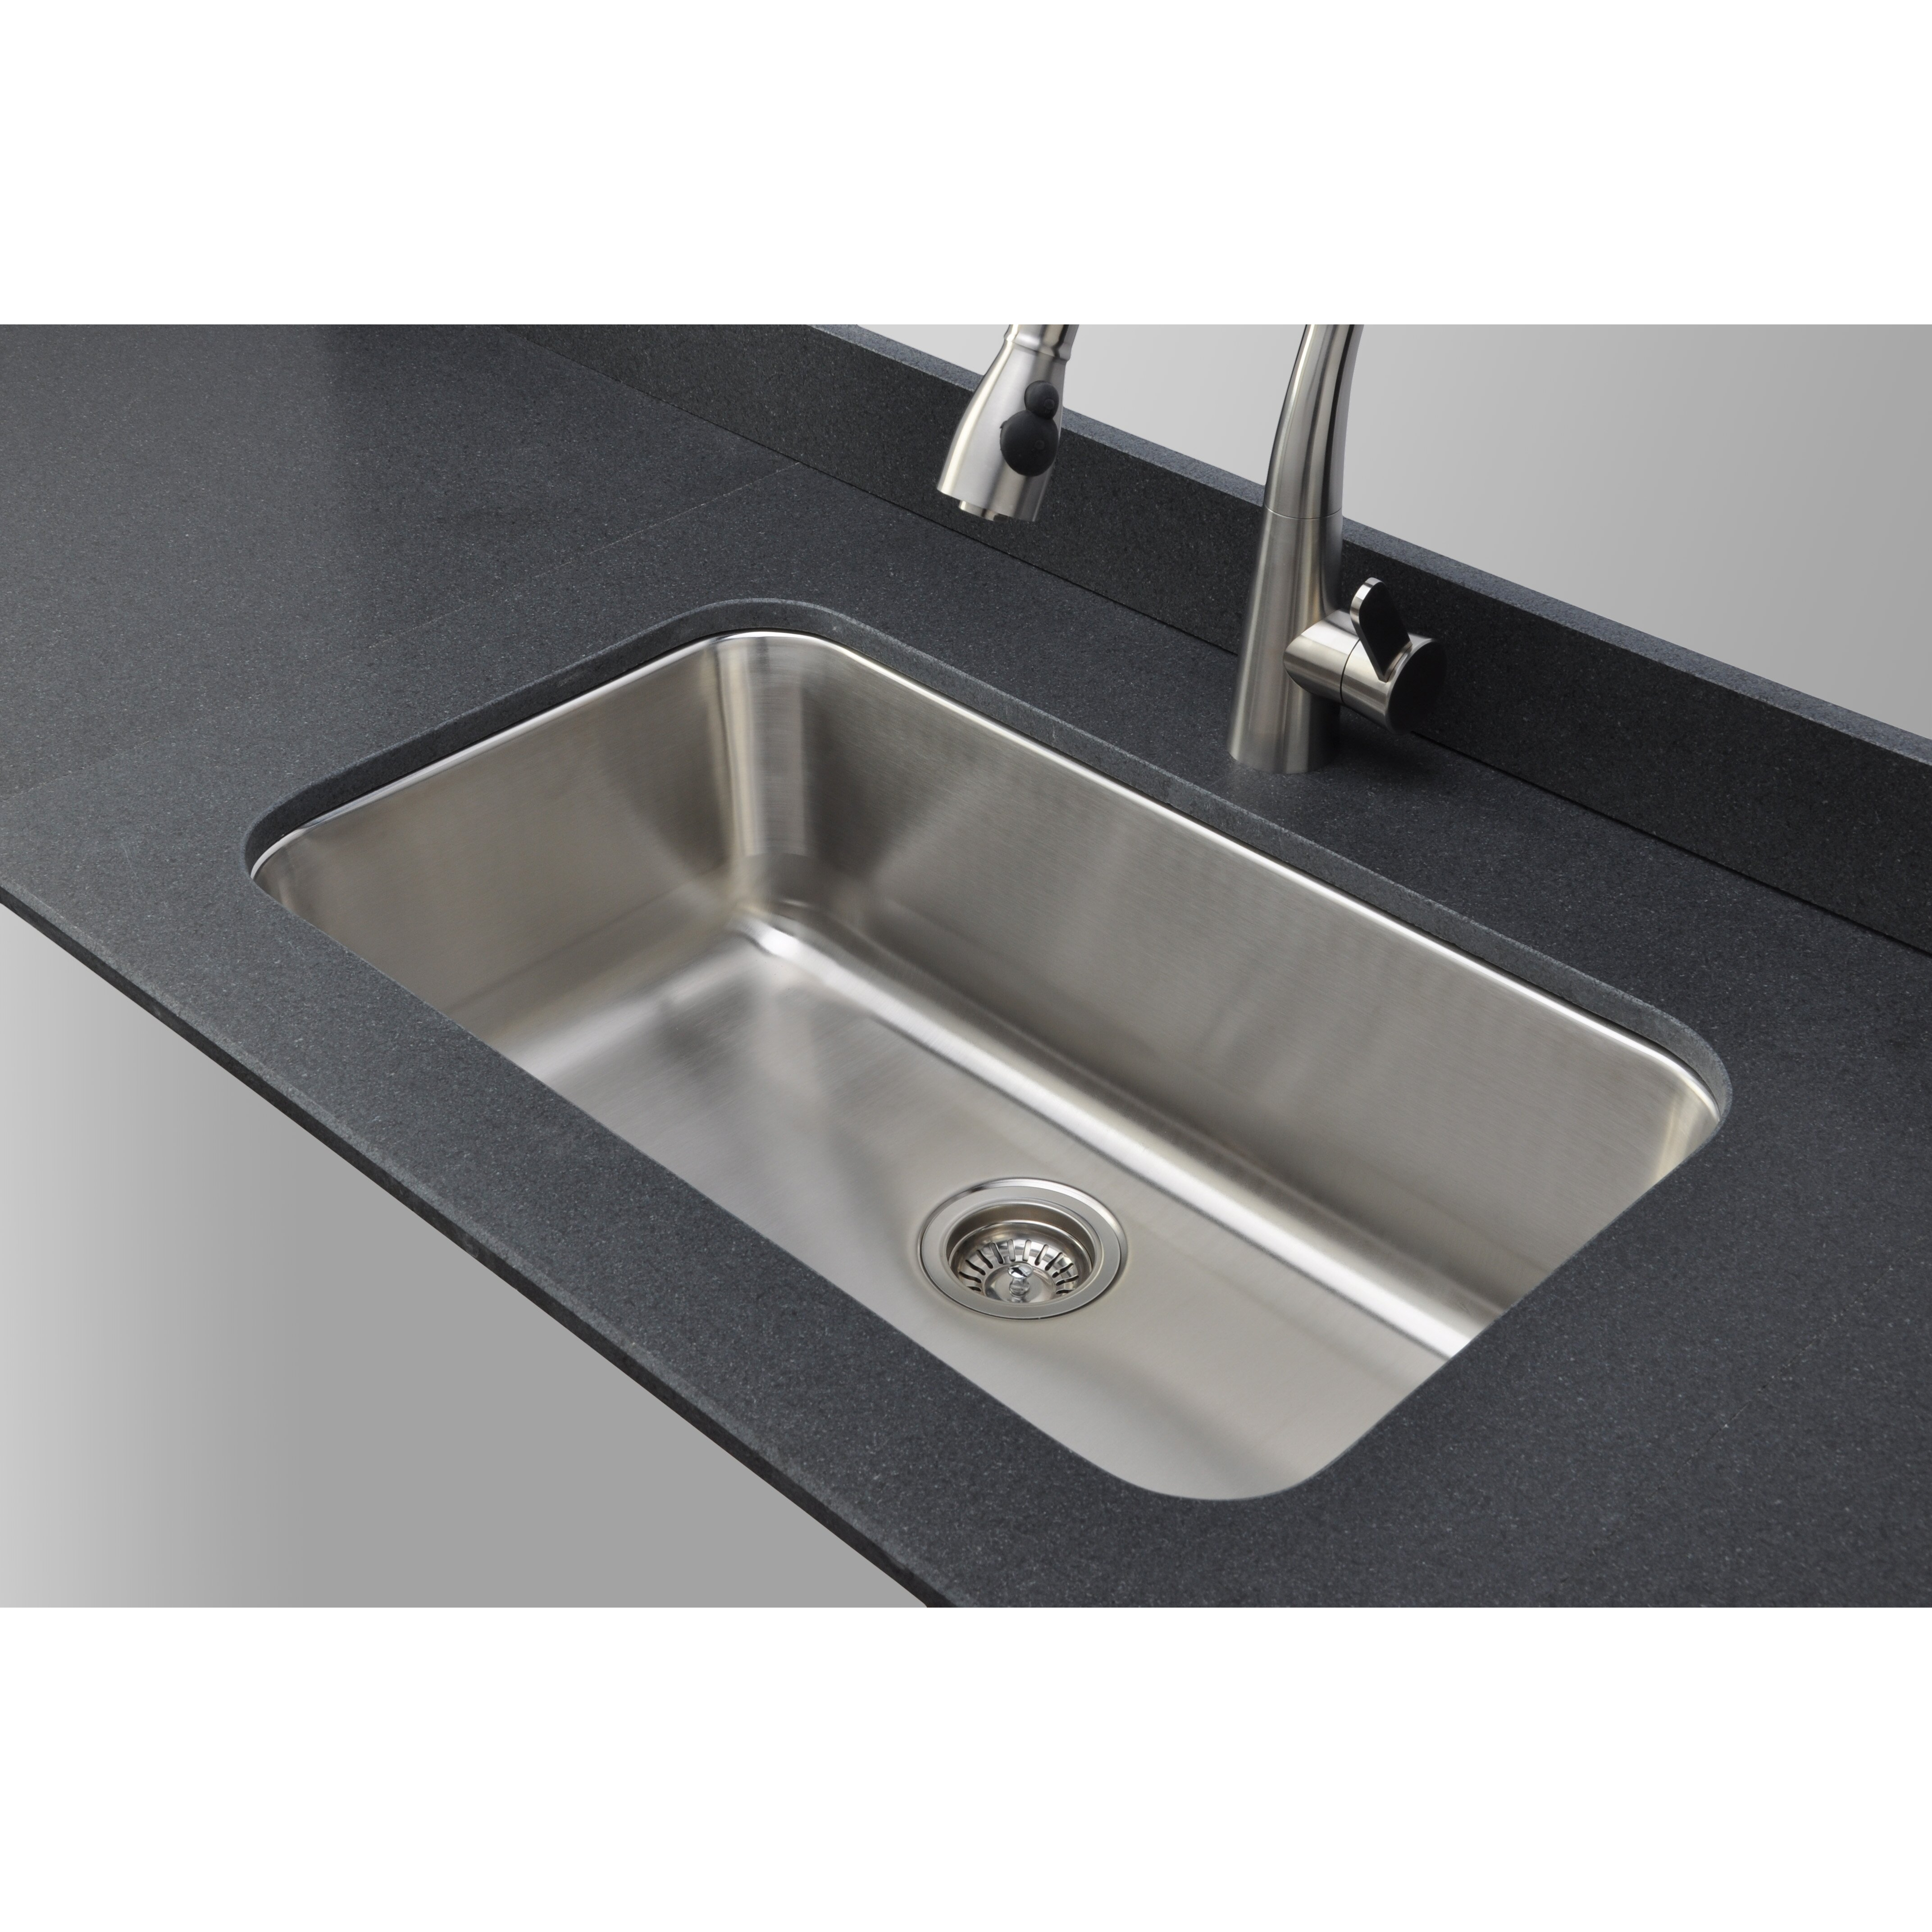 sinkware craftsmen series 29 88 quot x 18 06 quot kitchen